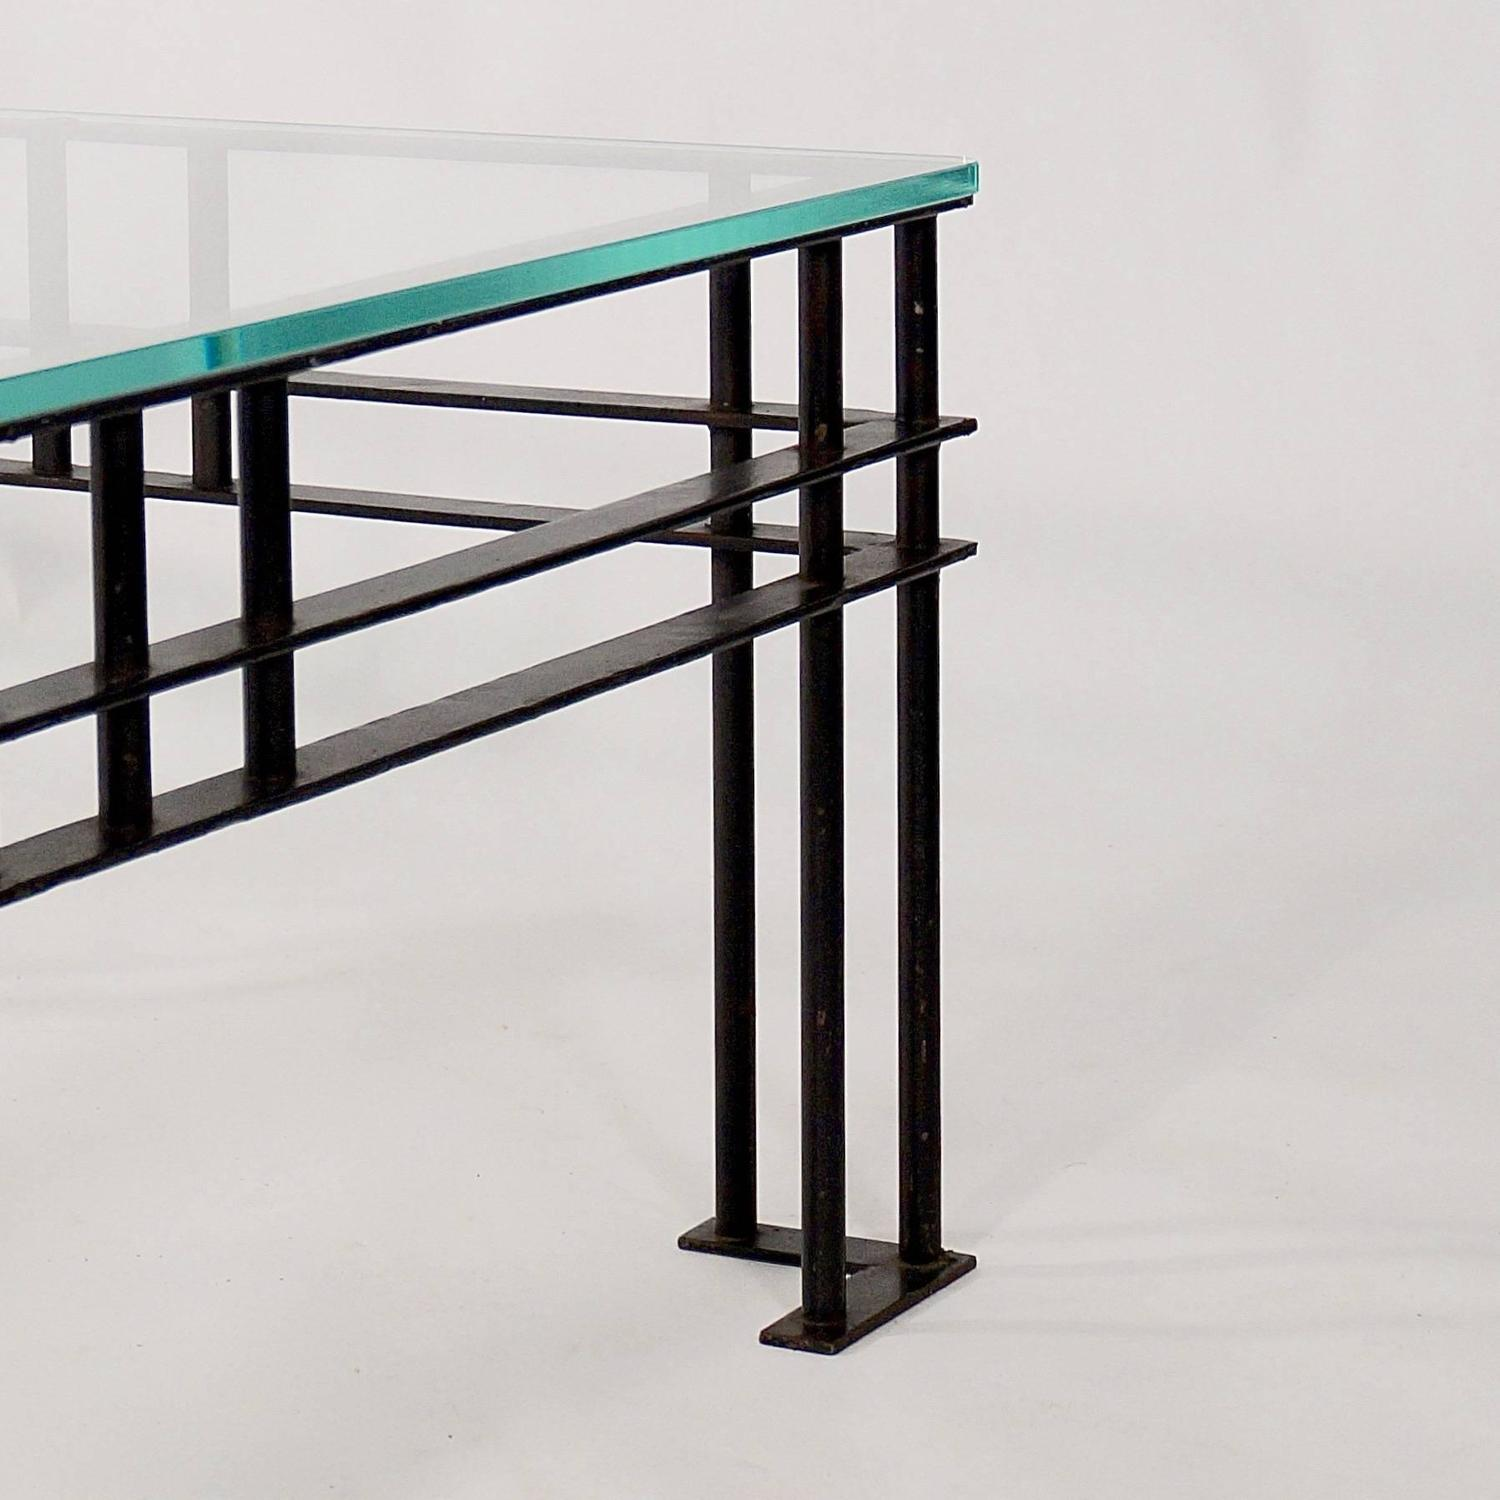 Glass Top Coffee Table With Iron Base: Rectangular Coffee Table With A Black Iron Base And Glass